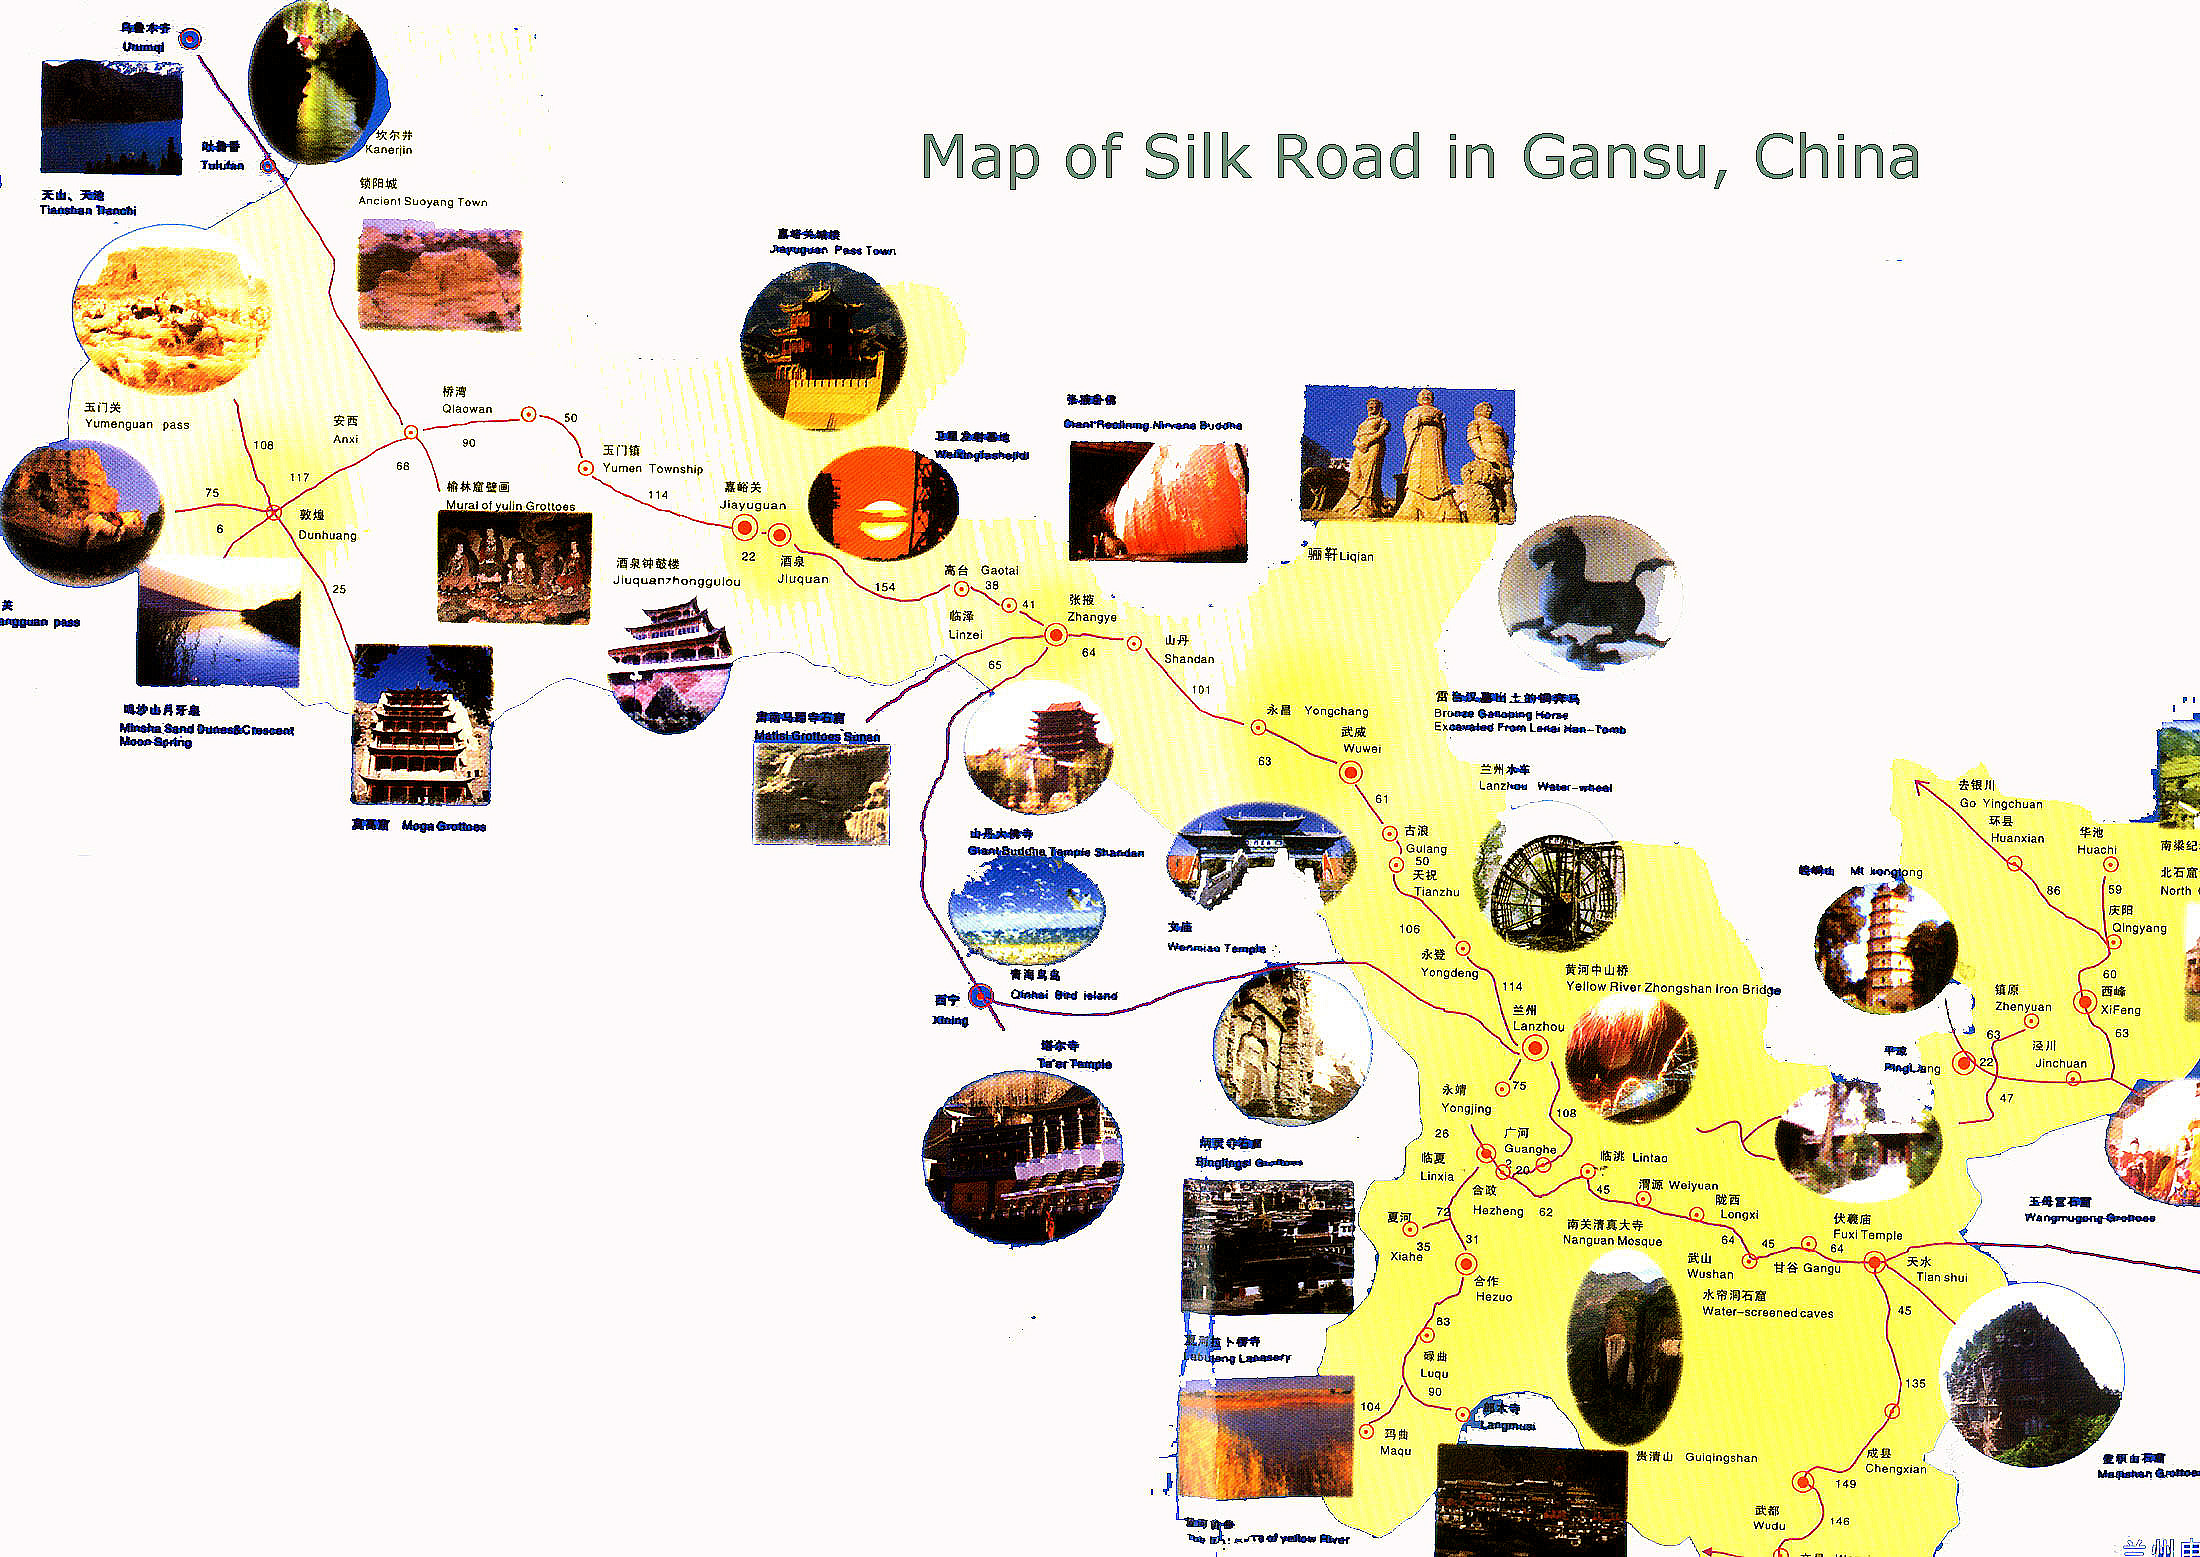 Silk Road Maps A Map Hepls Your Explore the Silk Road Adventure – Traveling Maps